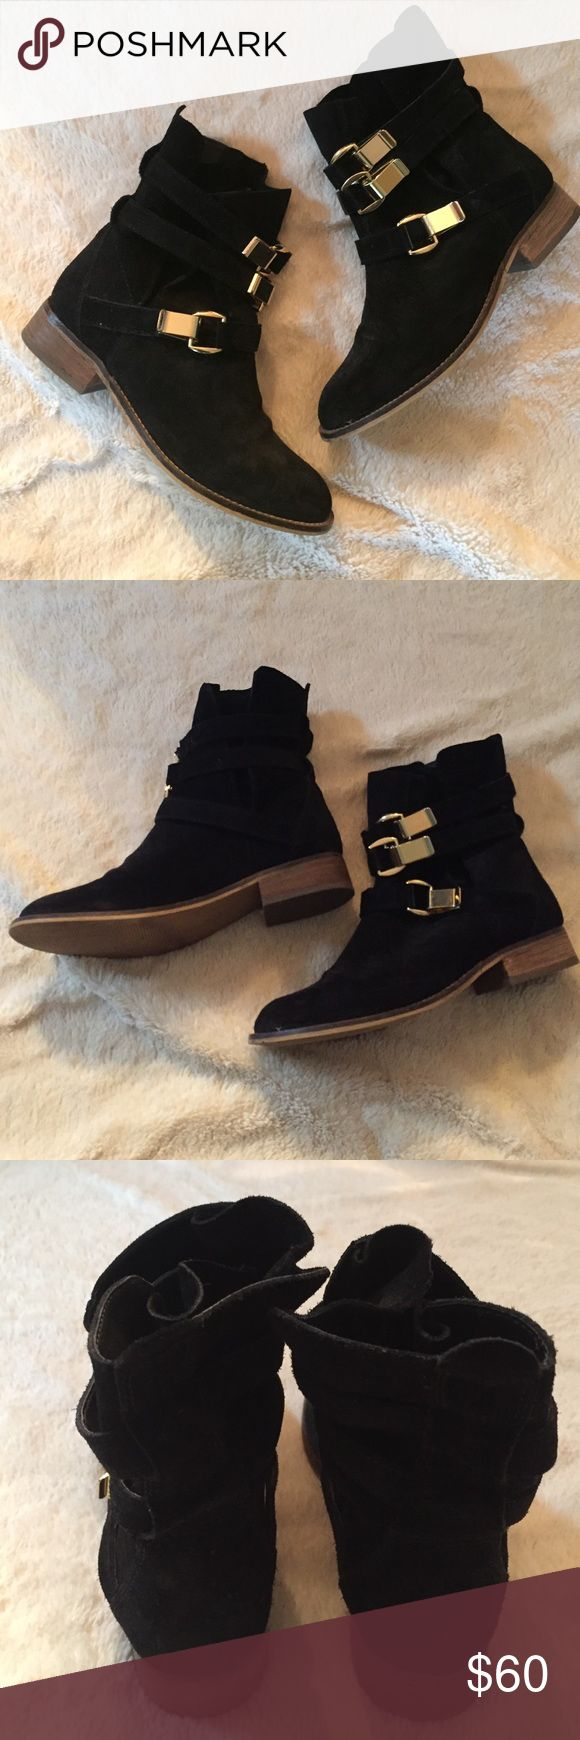 Steve Madden 'Haggle' bootie - perfect for fall!👻 Barely used Steve Madden Haggle bootie will have you like 😍😍 perfect booties to pair with black jeans and a cute top for a night out on the town Steve Madden Shoes Ankle Boots & Booties